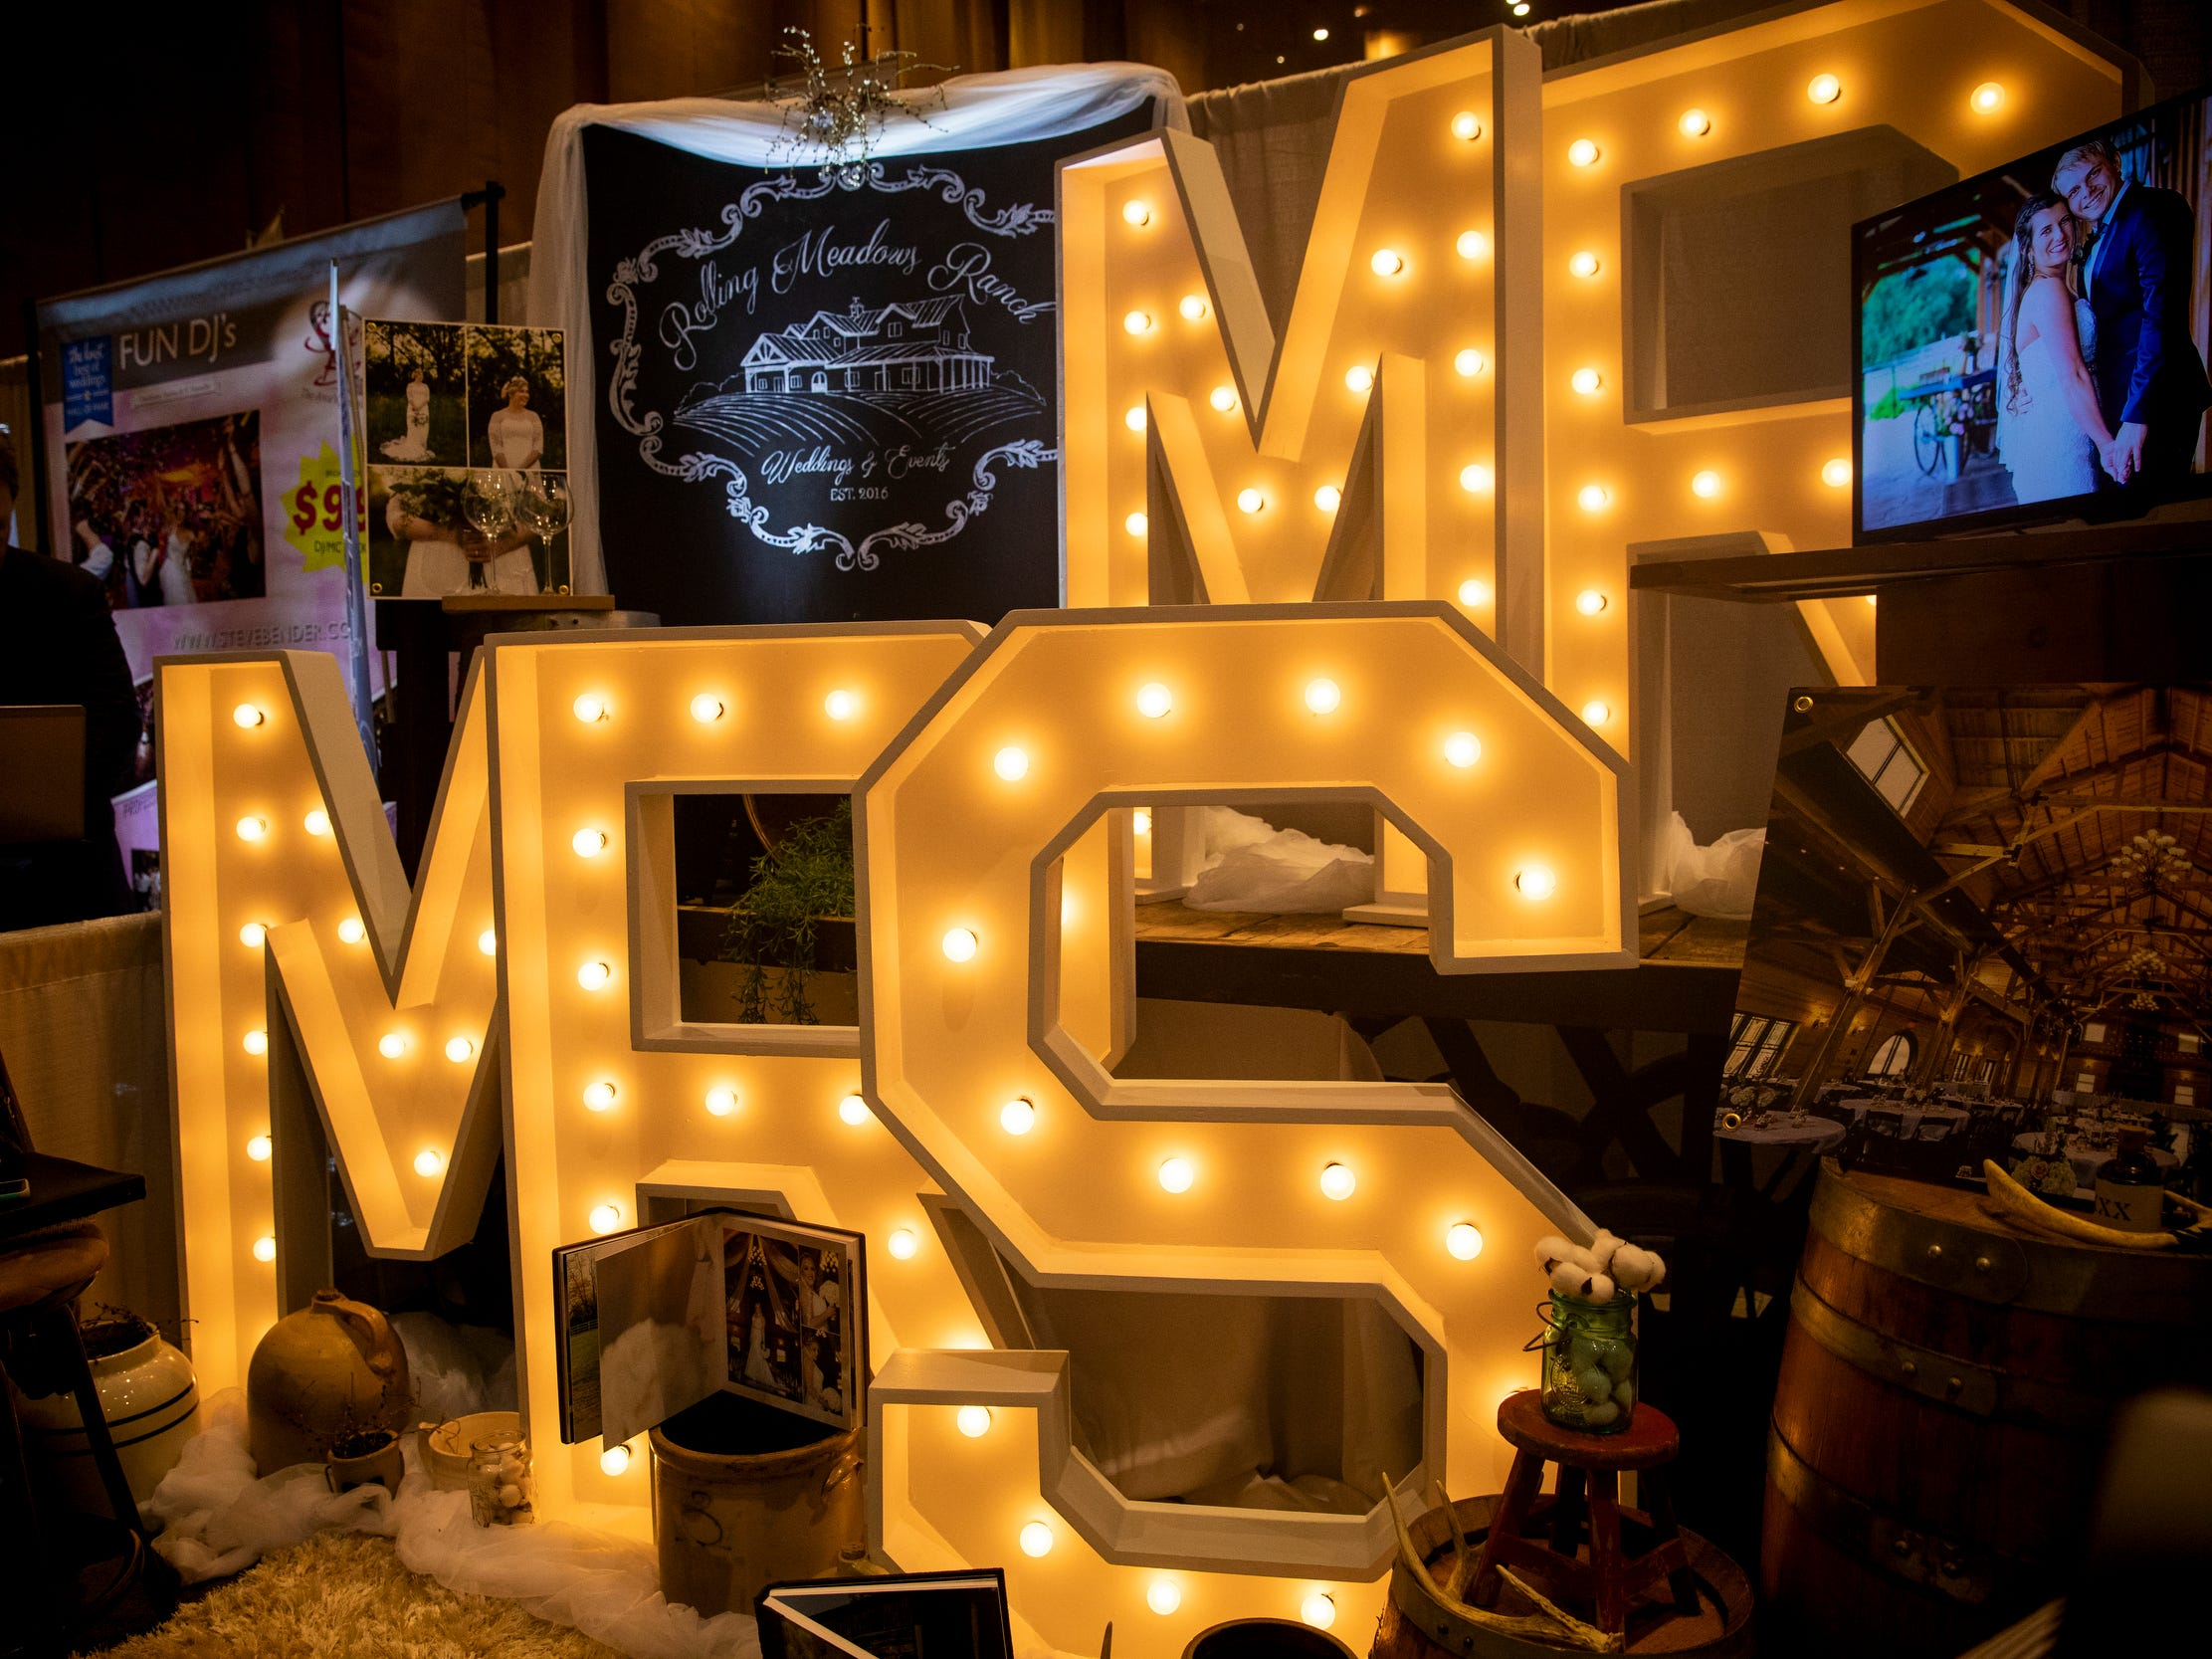 """Rolling Meadows Ranch is a wedding event center in Lebanon. Their booth at Wendy's Bridal Show featured large lit """"Mr"""" and """"Mrs"""" signs at the Duke Energy Convention Center Saturday, January 5, 2019 in Downtown Cincinnati."""